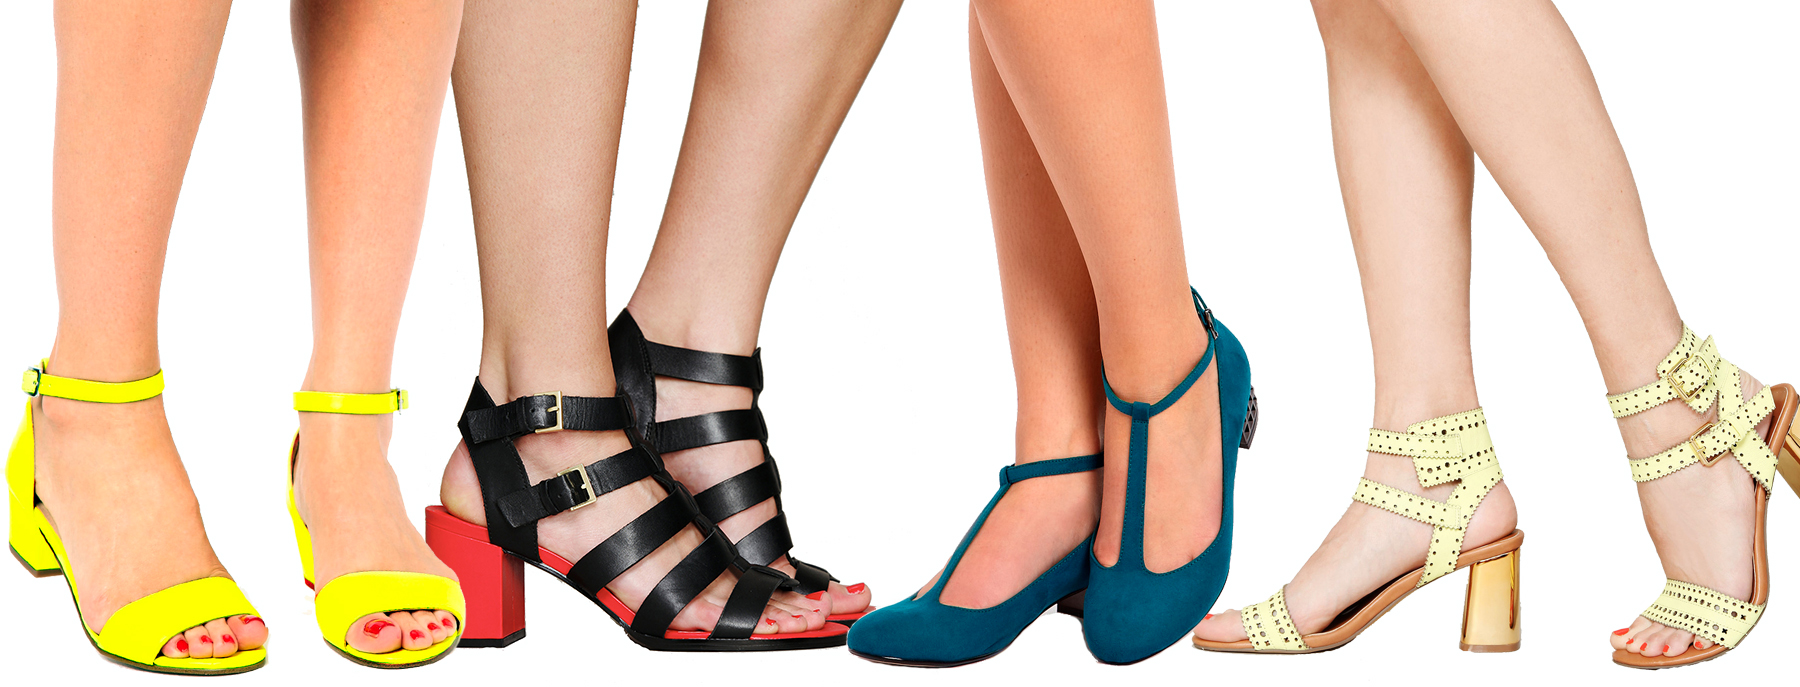 Get Low: Fun Ways to Try the Low-Heel Trend